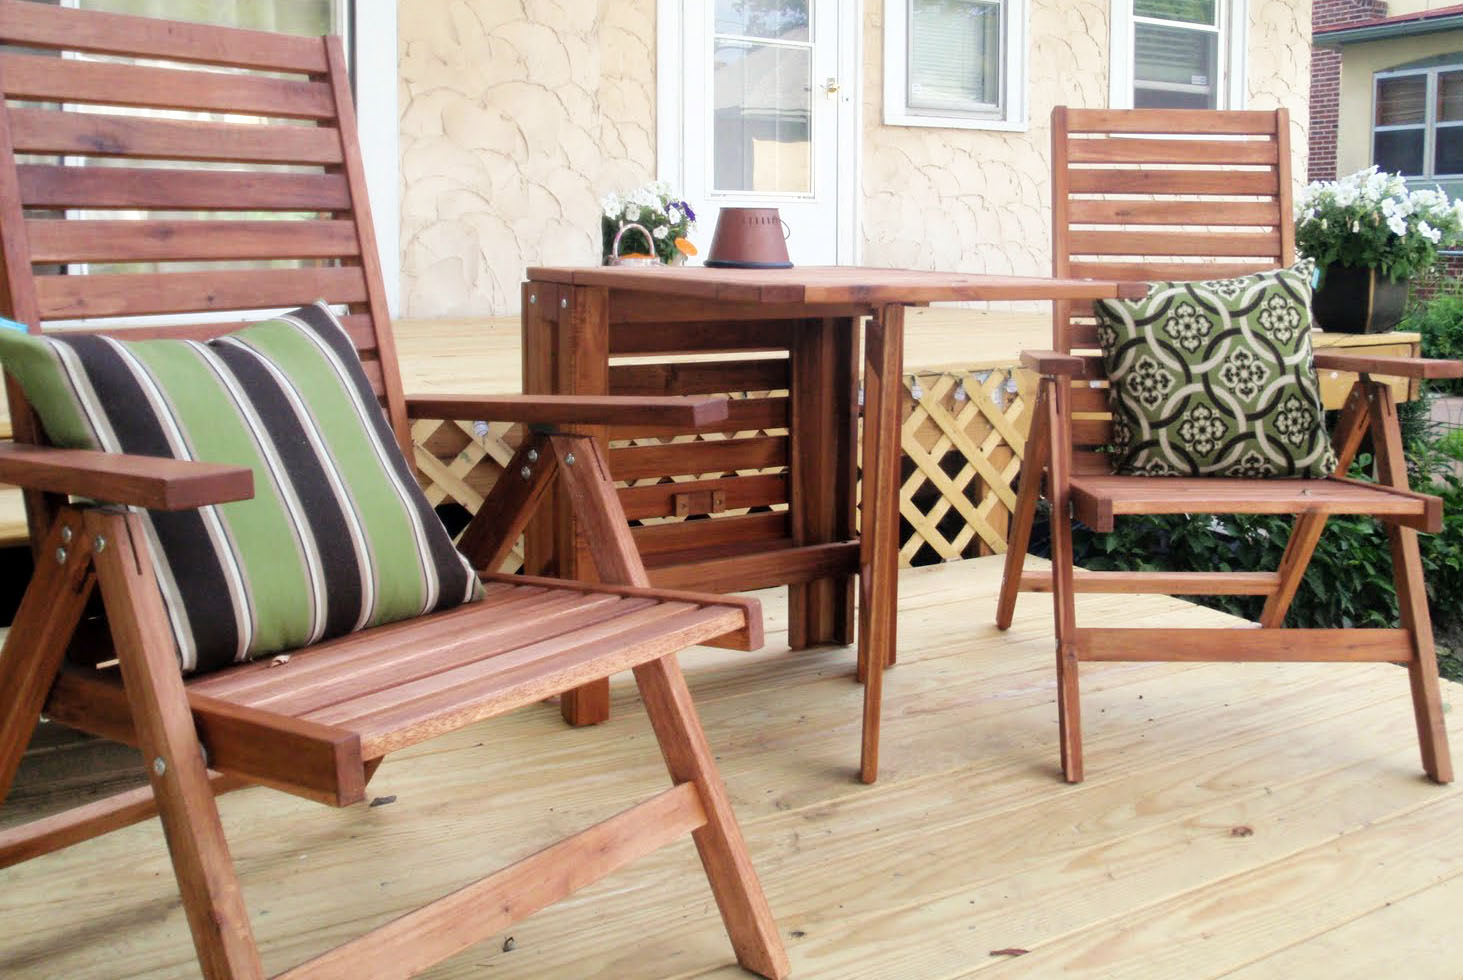 Small Balcony Furniture Option